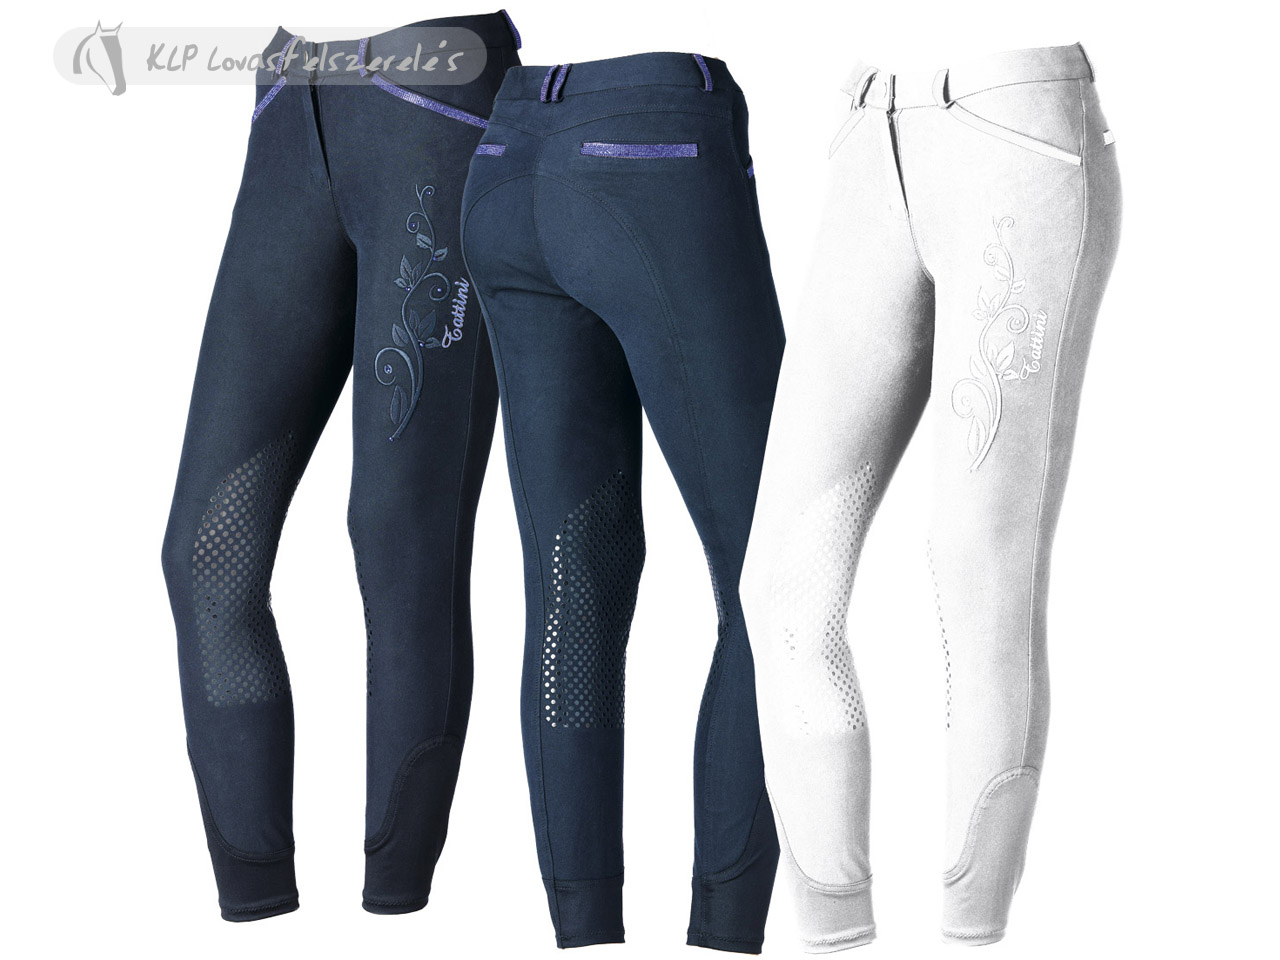 Tattini Ladies Felce Breeches With Silicone Knee Patch